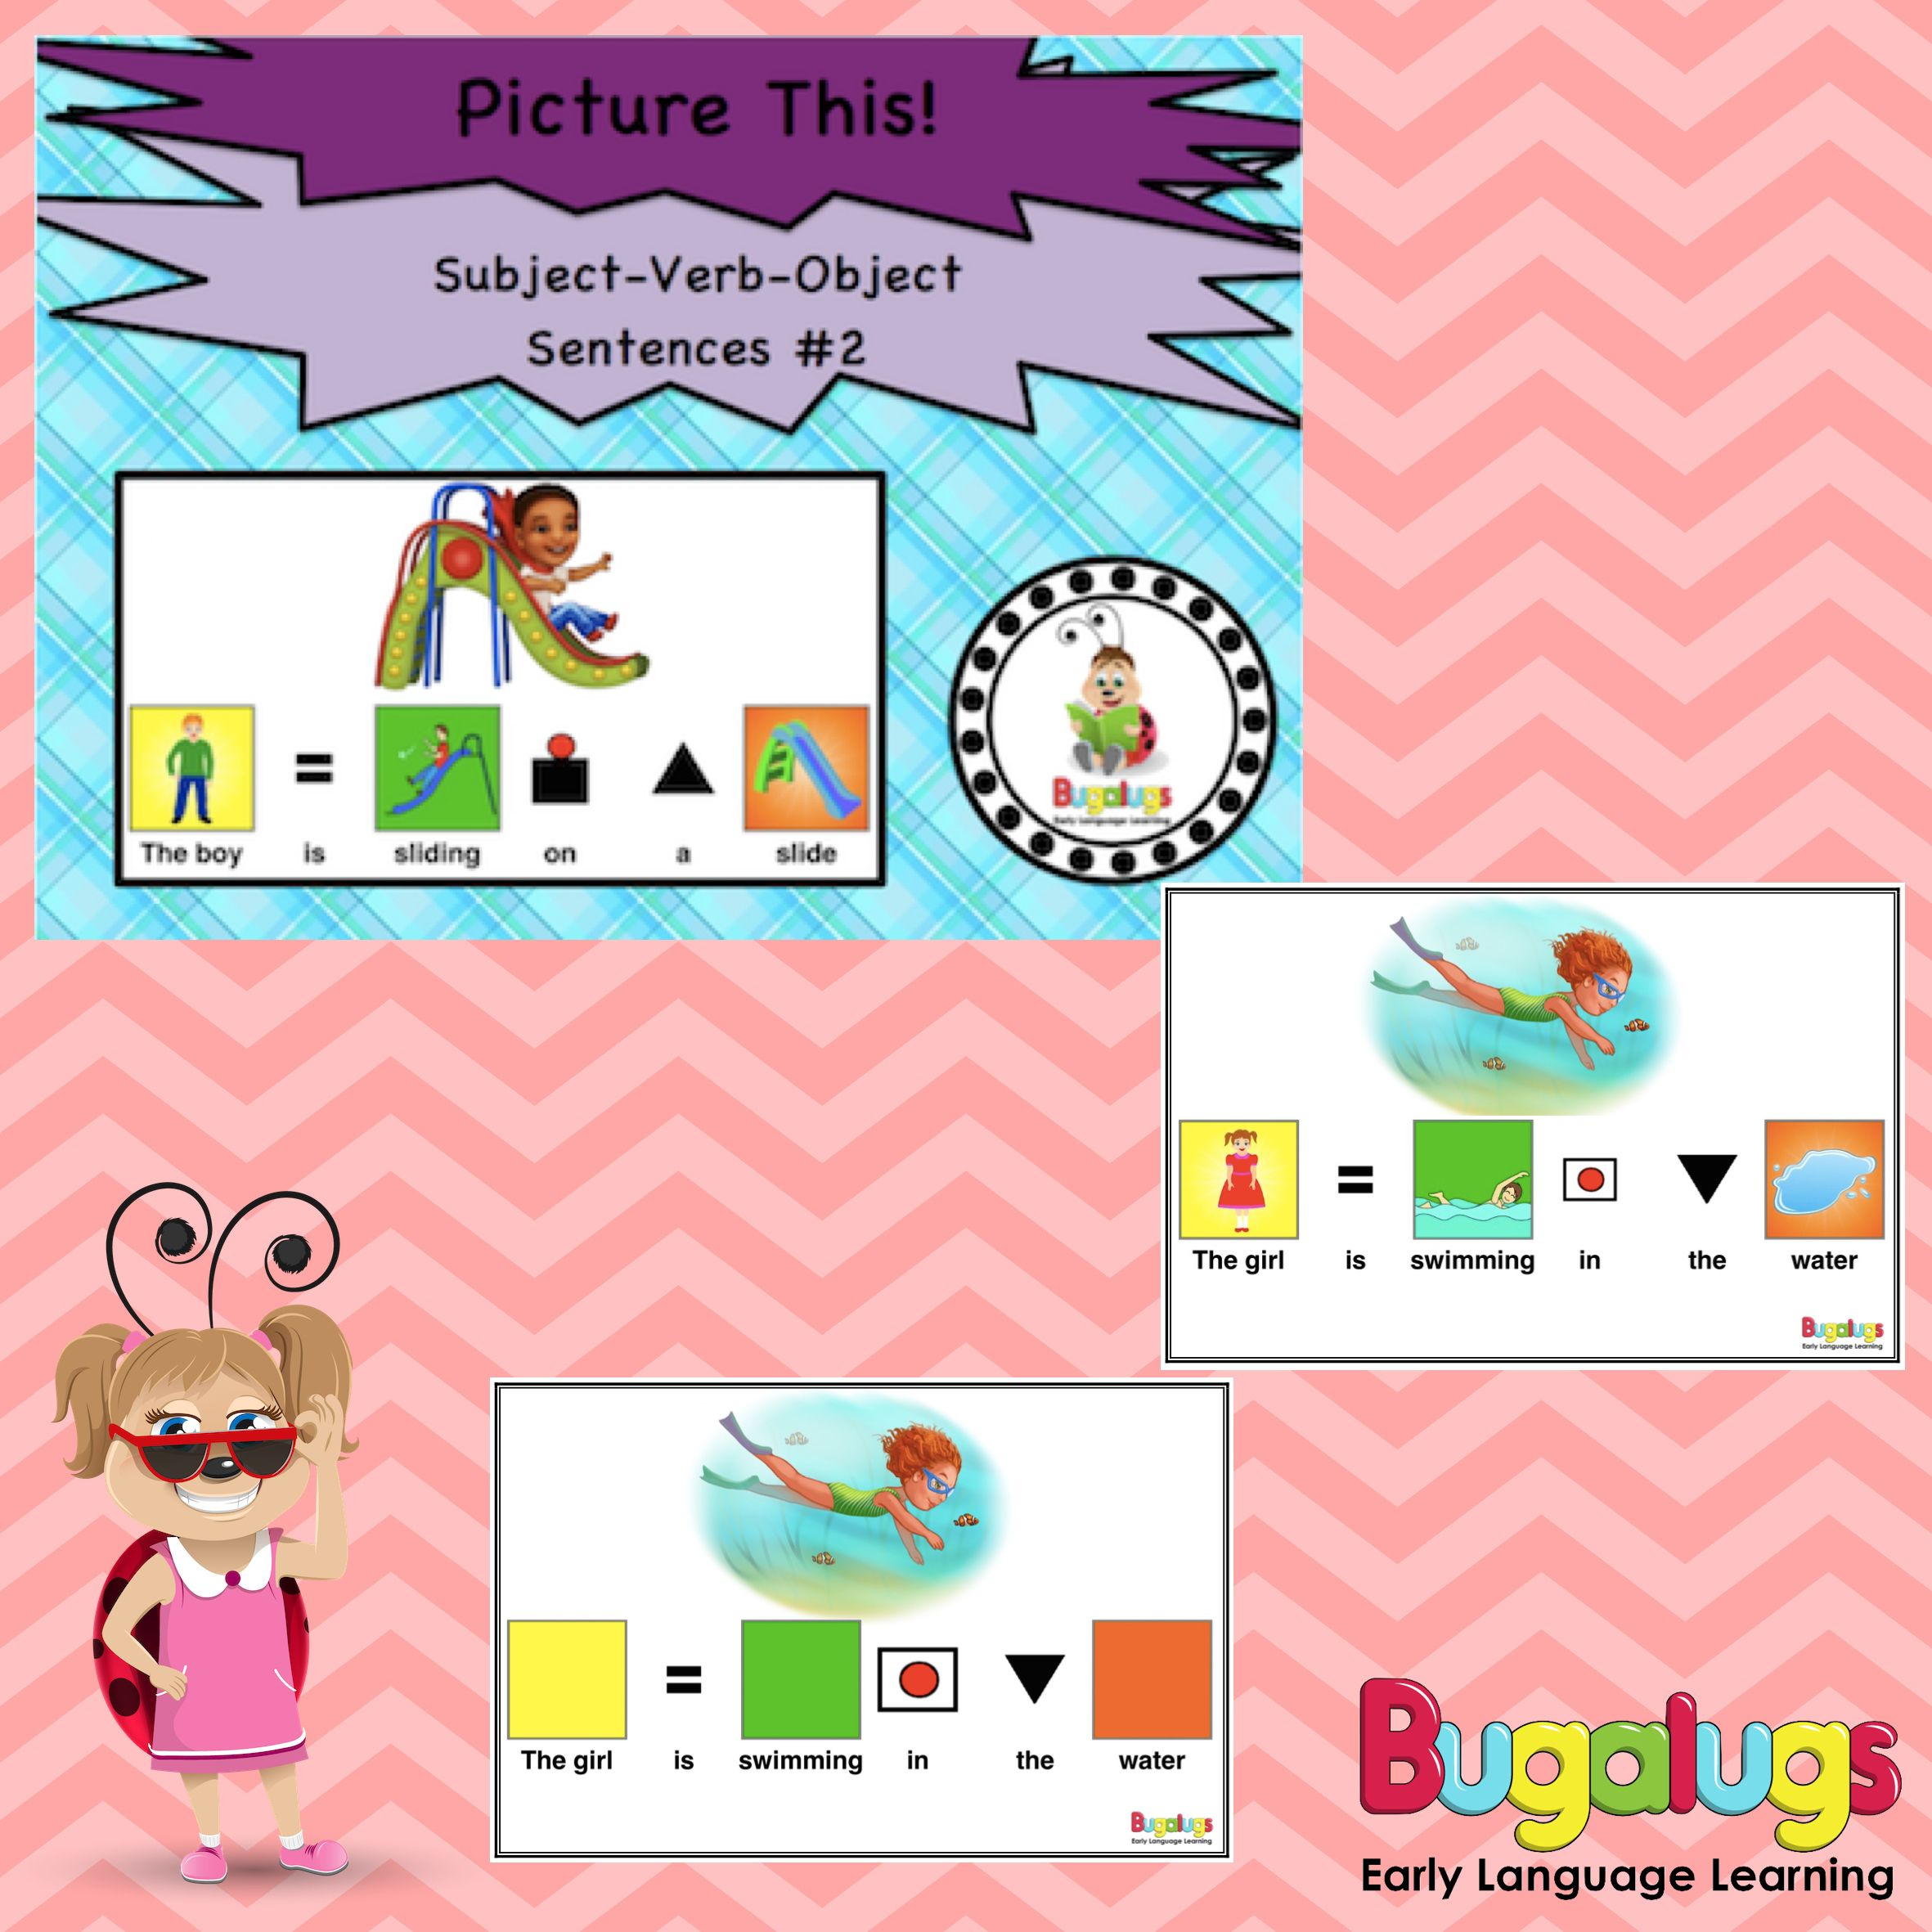 Subject Verb Object Visual Sentence Package 2 Use This Package To Teach Children 23 More